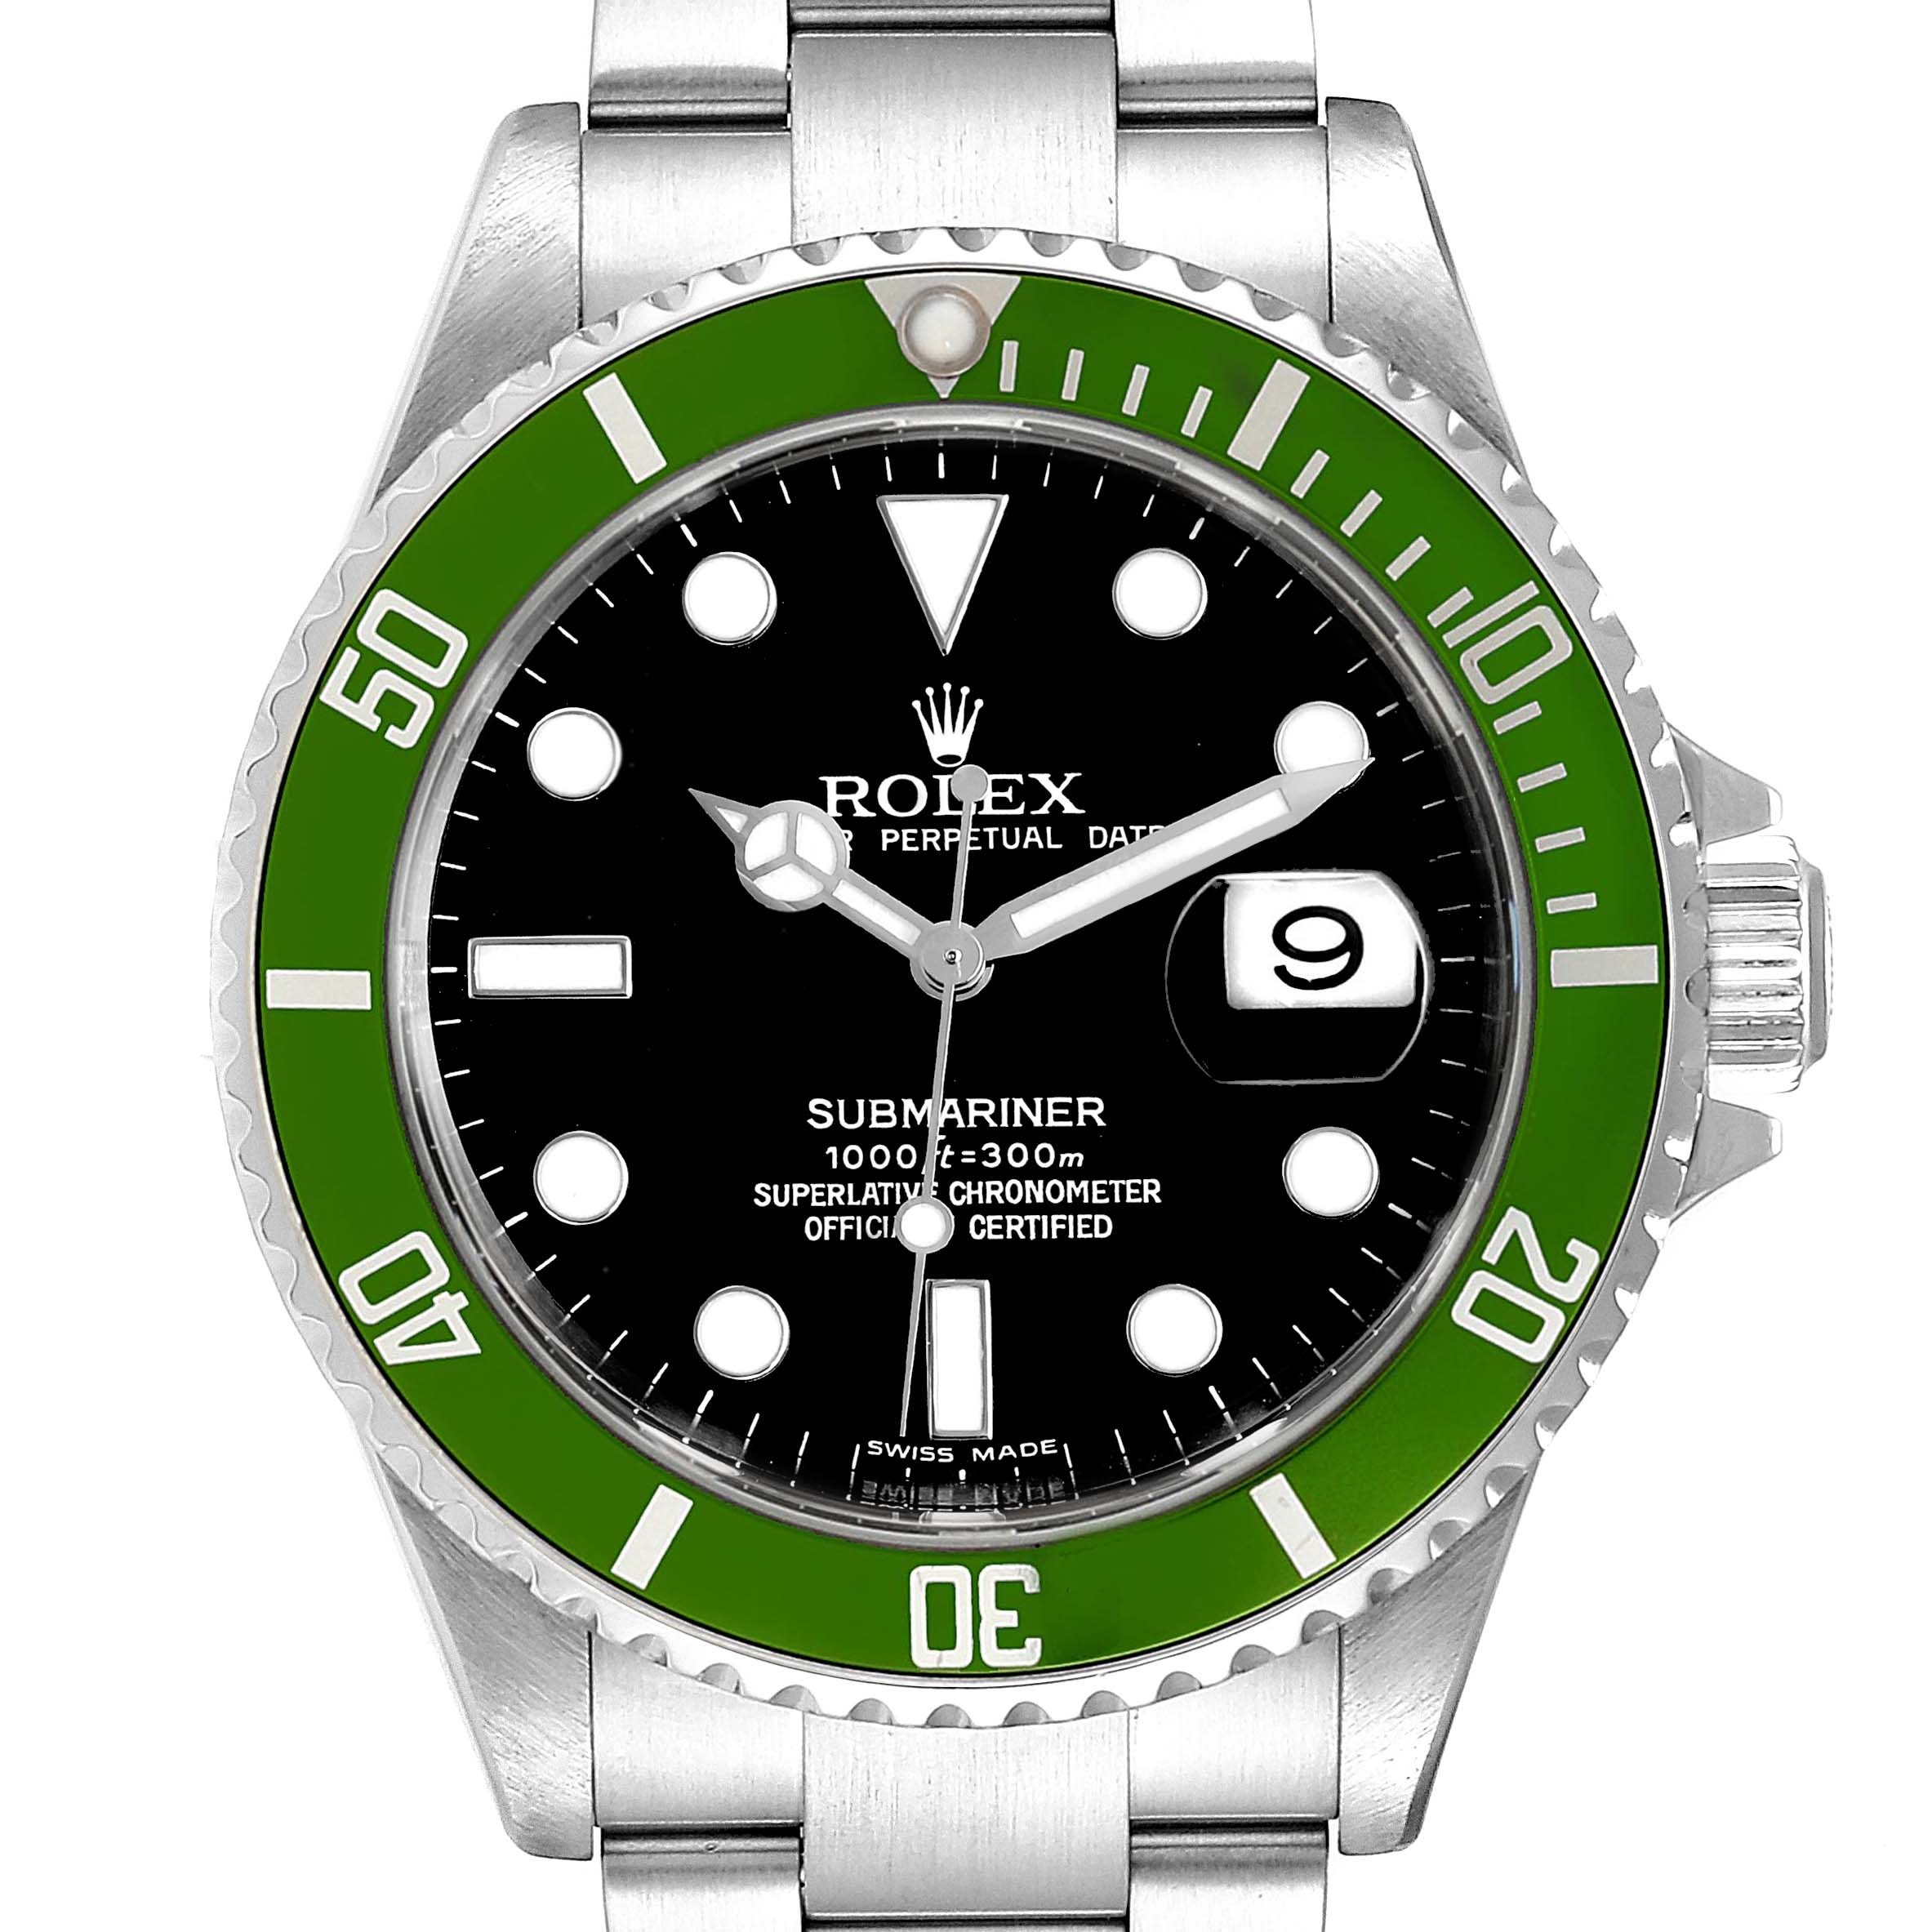 Photo of Rolex Submariner 50th Anniversary Green Kermit Mens Watch 16610LV